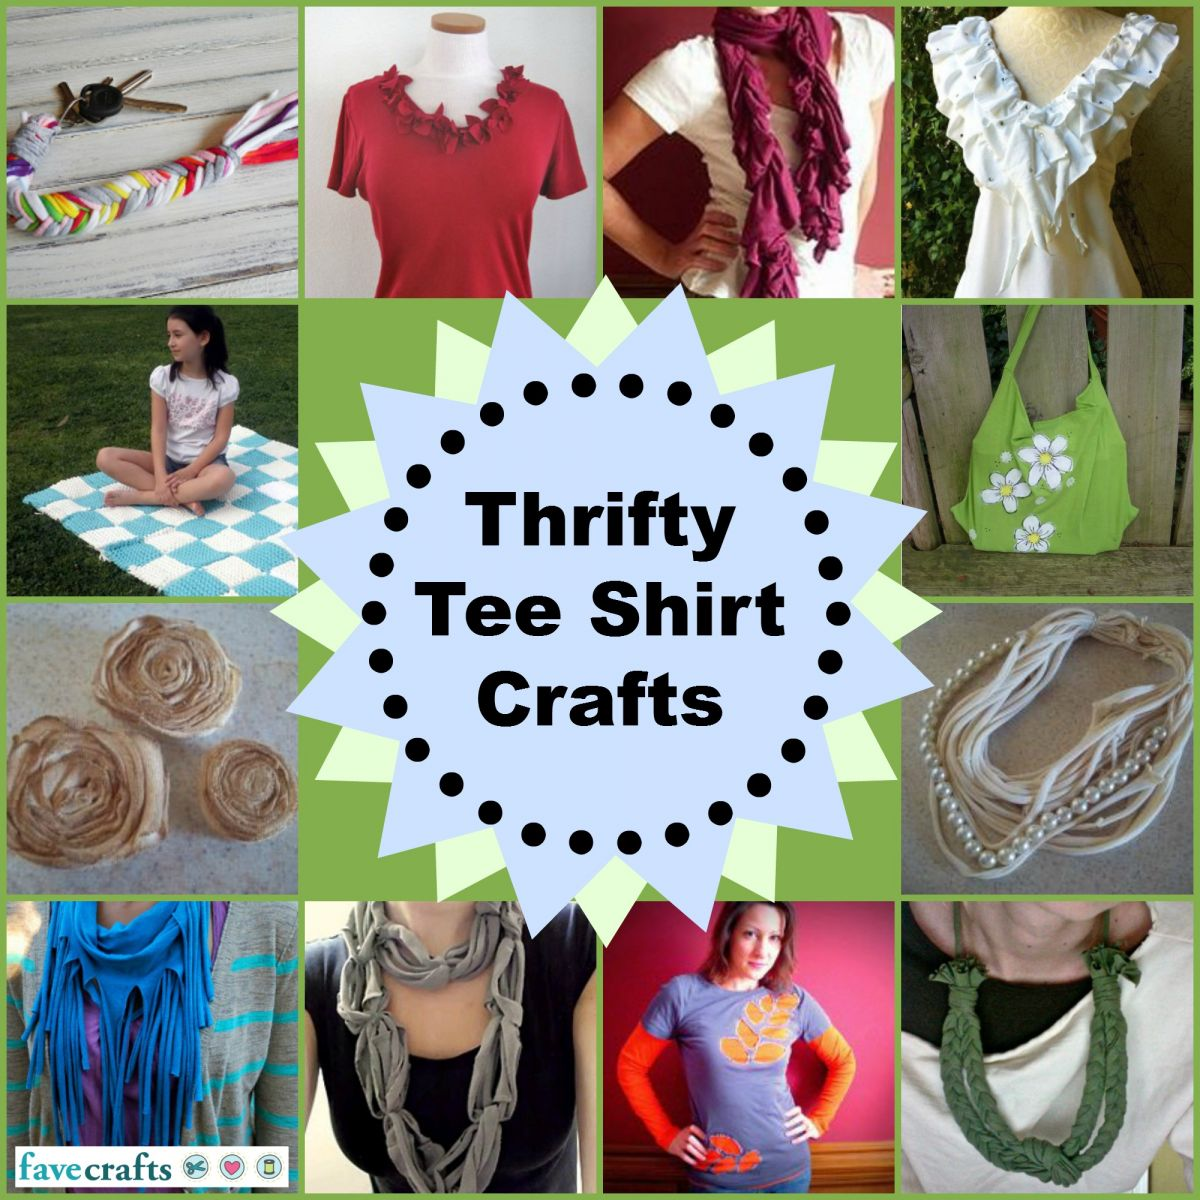 How to Make a Tee Shirt Scarf + 18 Tee Shirt Crafts